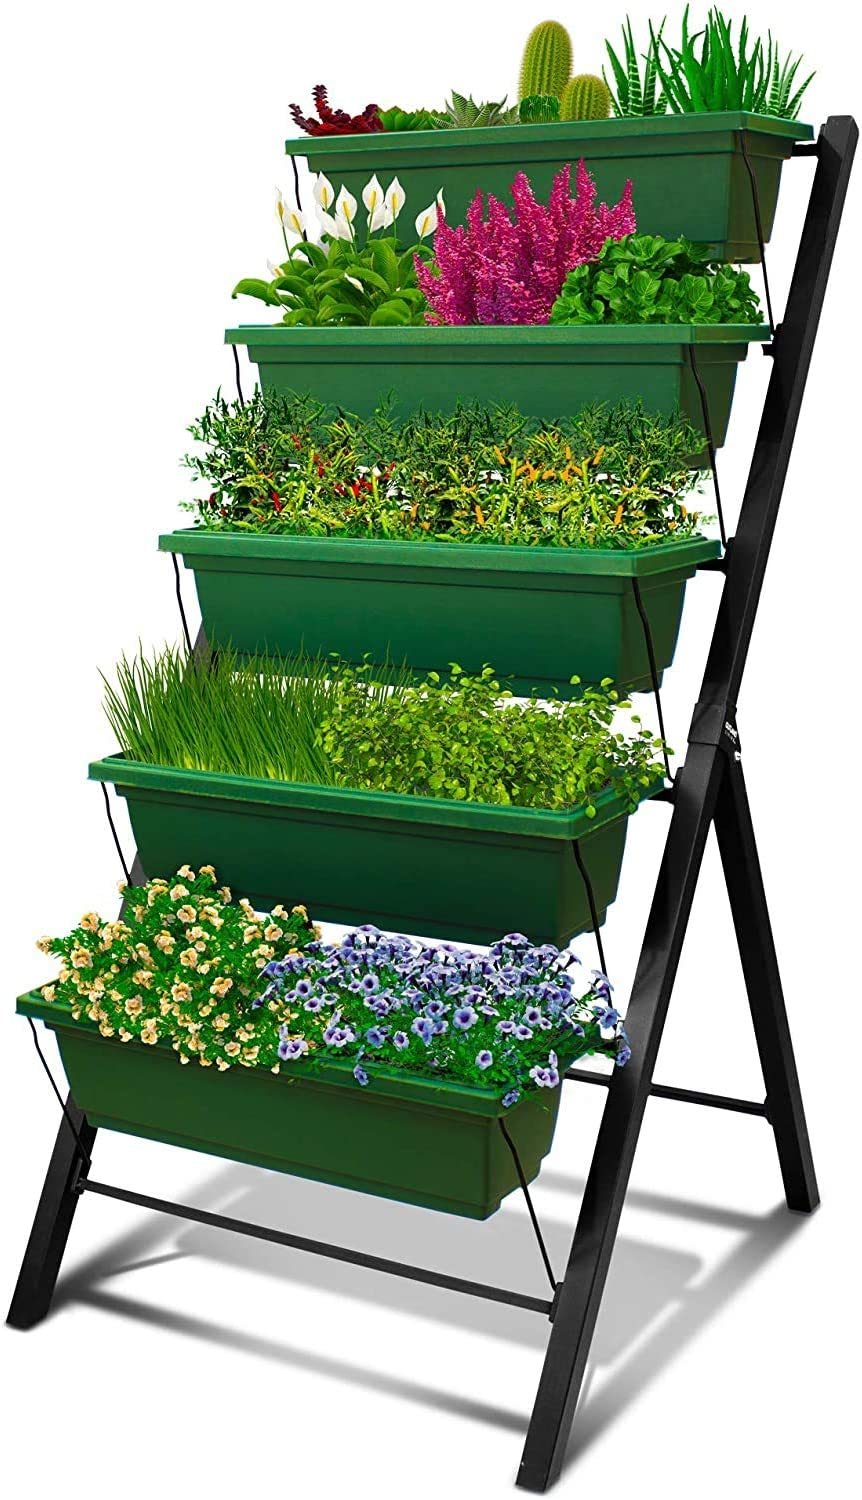 4Ft Ultra-Cheap Deals Vertical Raised Challenge the lowest price Garden Bed - 5 Tier Planter fo Box Safe Food